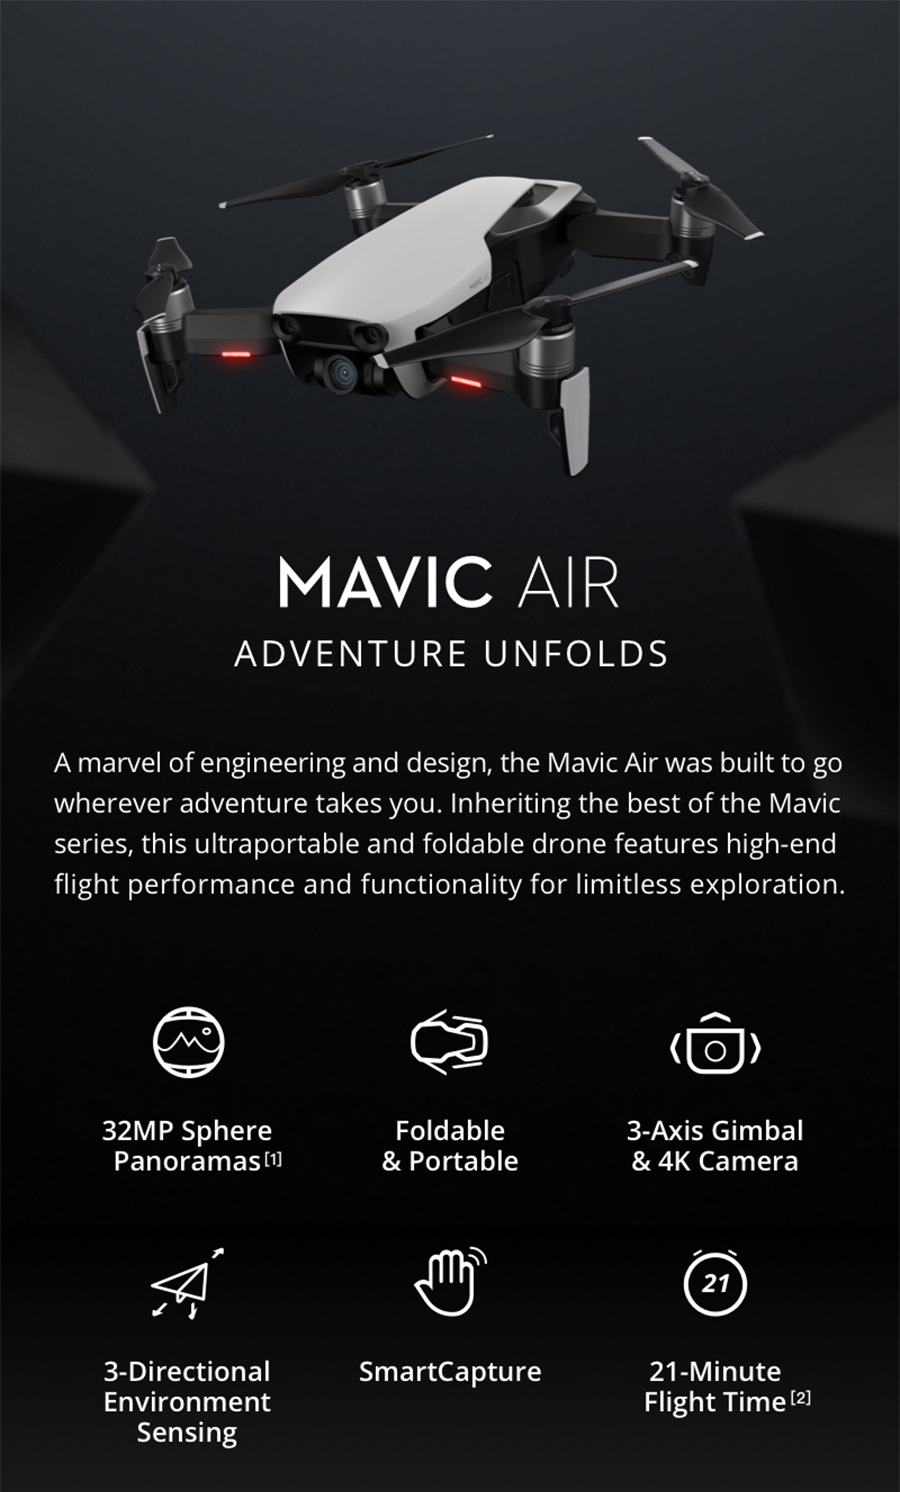 DJI Mavic AirMavic Air Fly More Combo Drone 4K 100Mbps Video 3 Axis Gimbal Camera